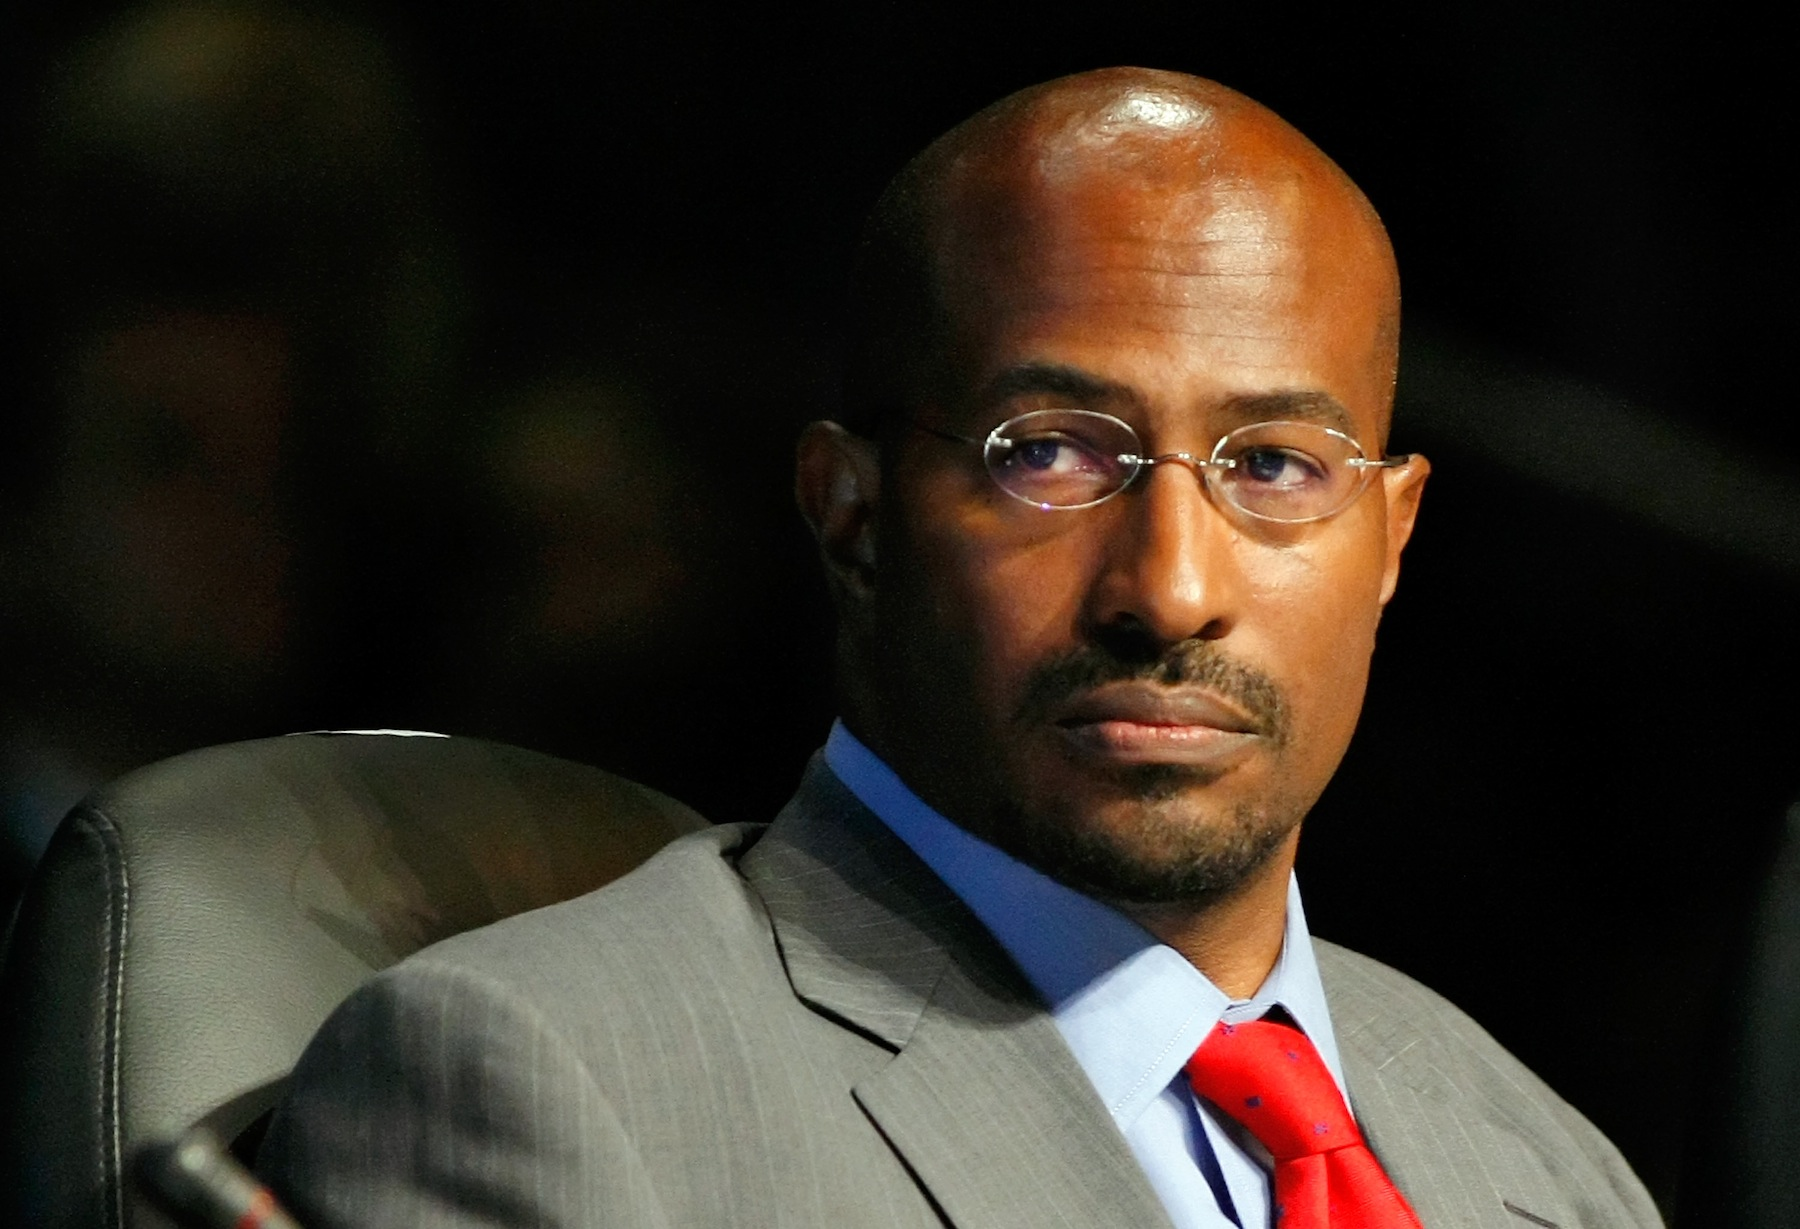 Van Jones, former White House green-jobs czar, or Special Adviser for Green Jobs, Enterprise and Innovation at the White House Council on Environmental Quality